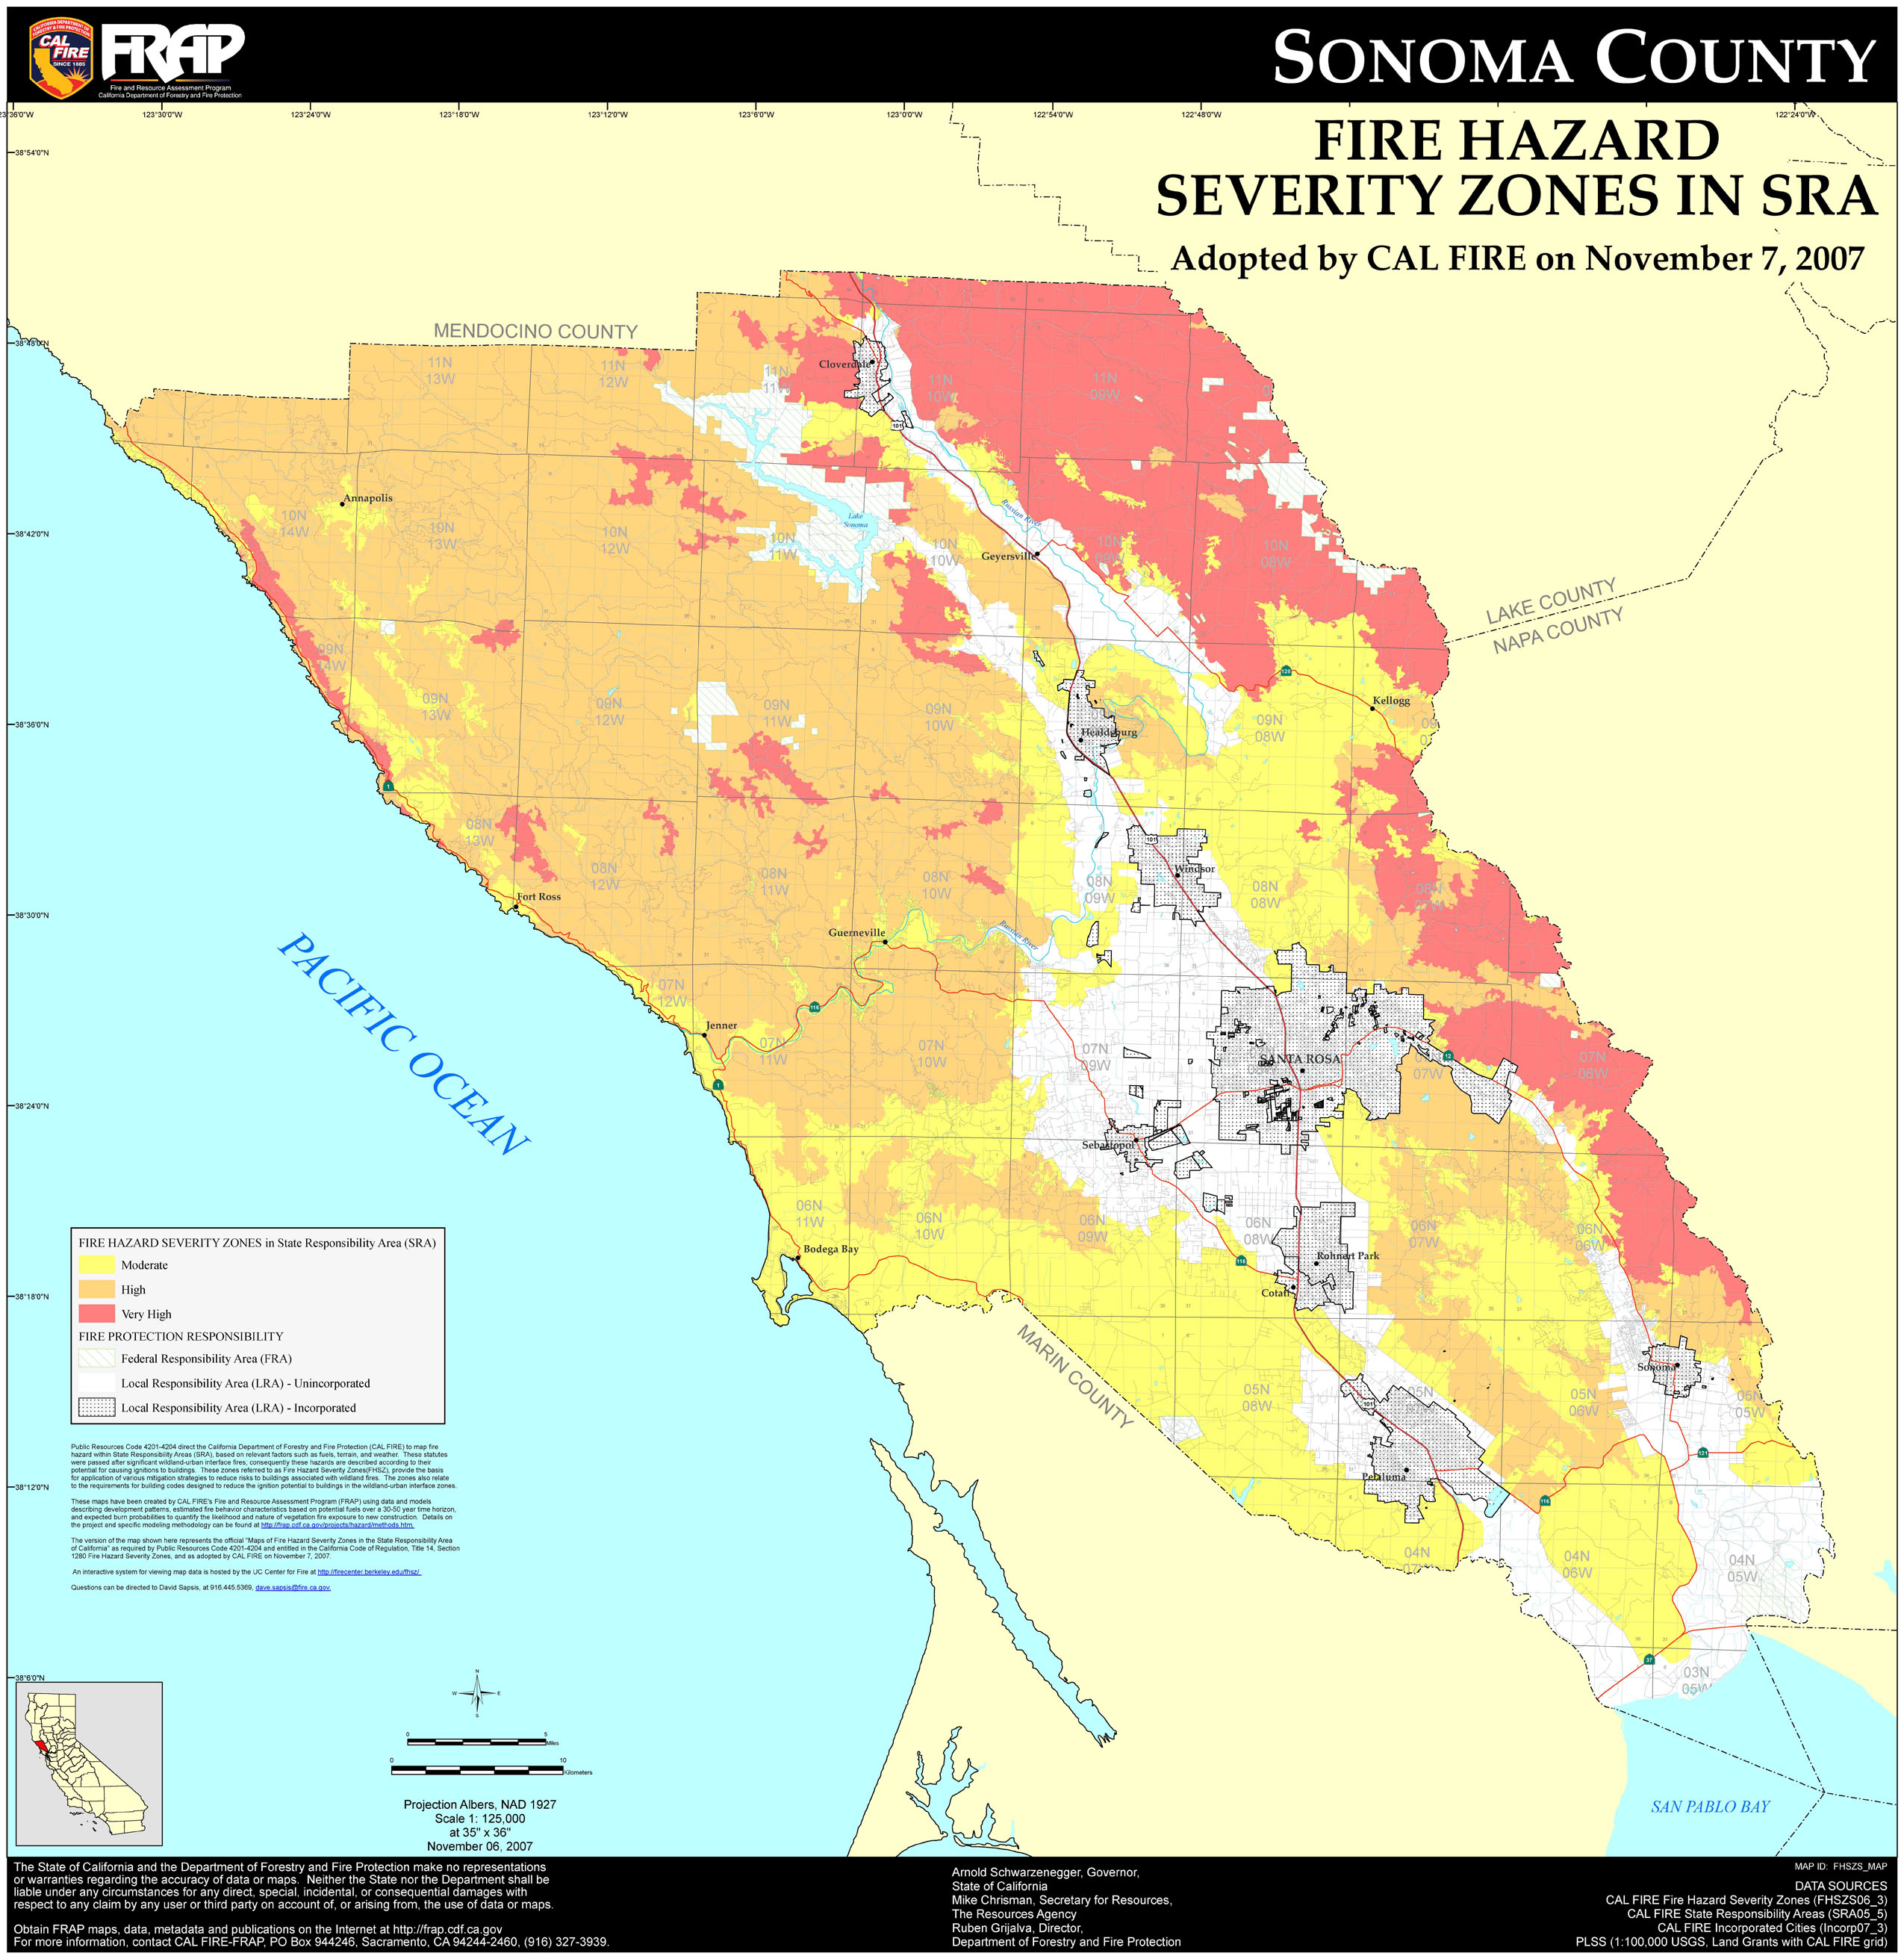 Cal Fire Sonoma County Fhsz Map In California Fire Google Road Maps - Live Fire Map California